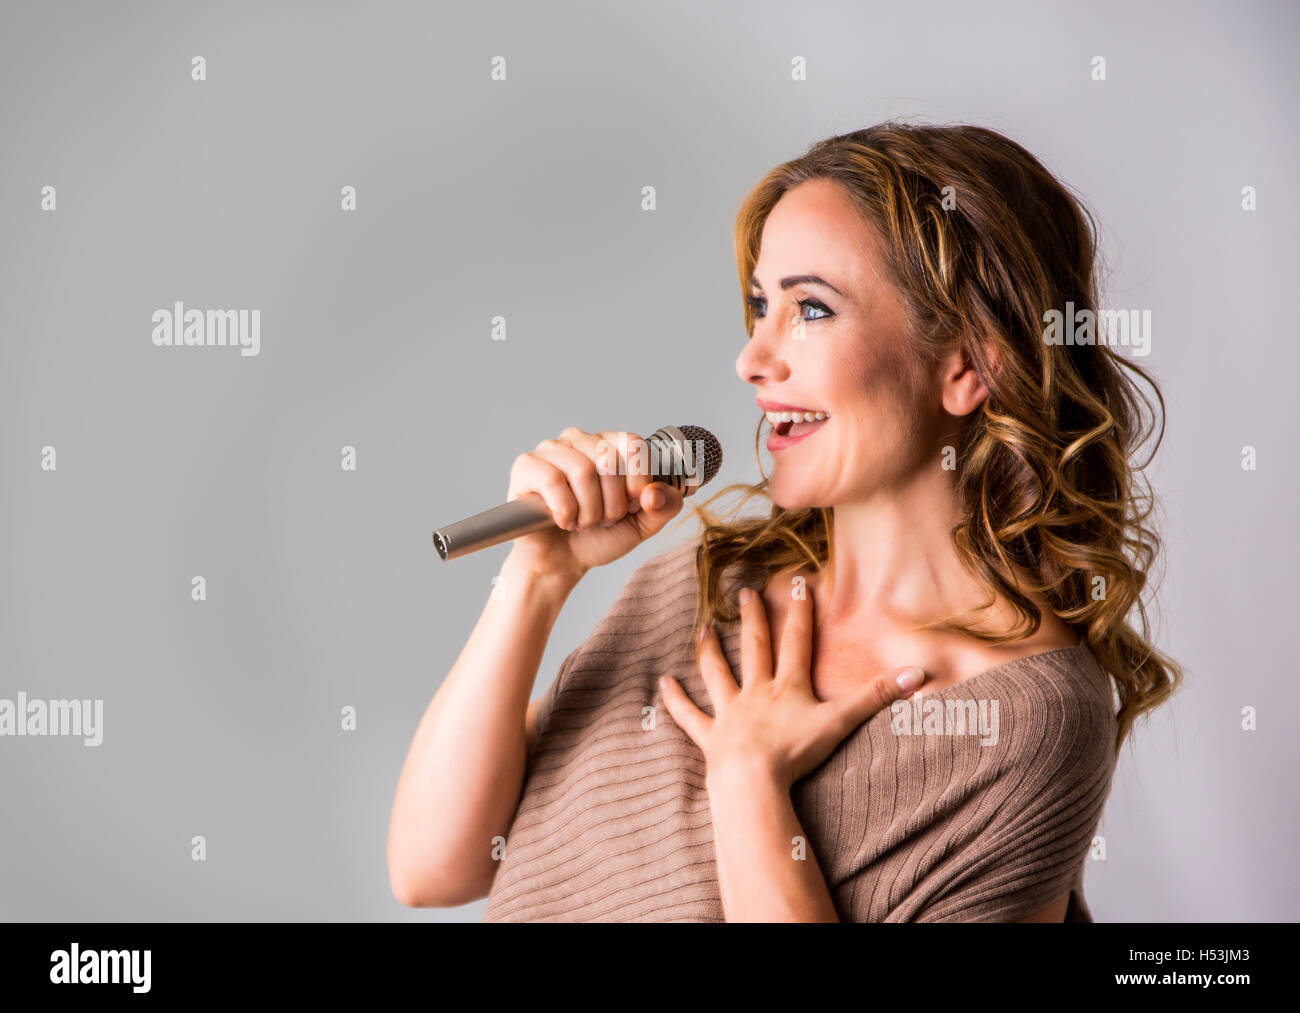 Attractive adult woman speaking into microphone and smile - Stock Image